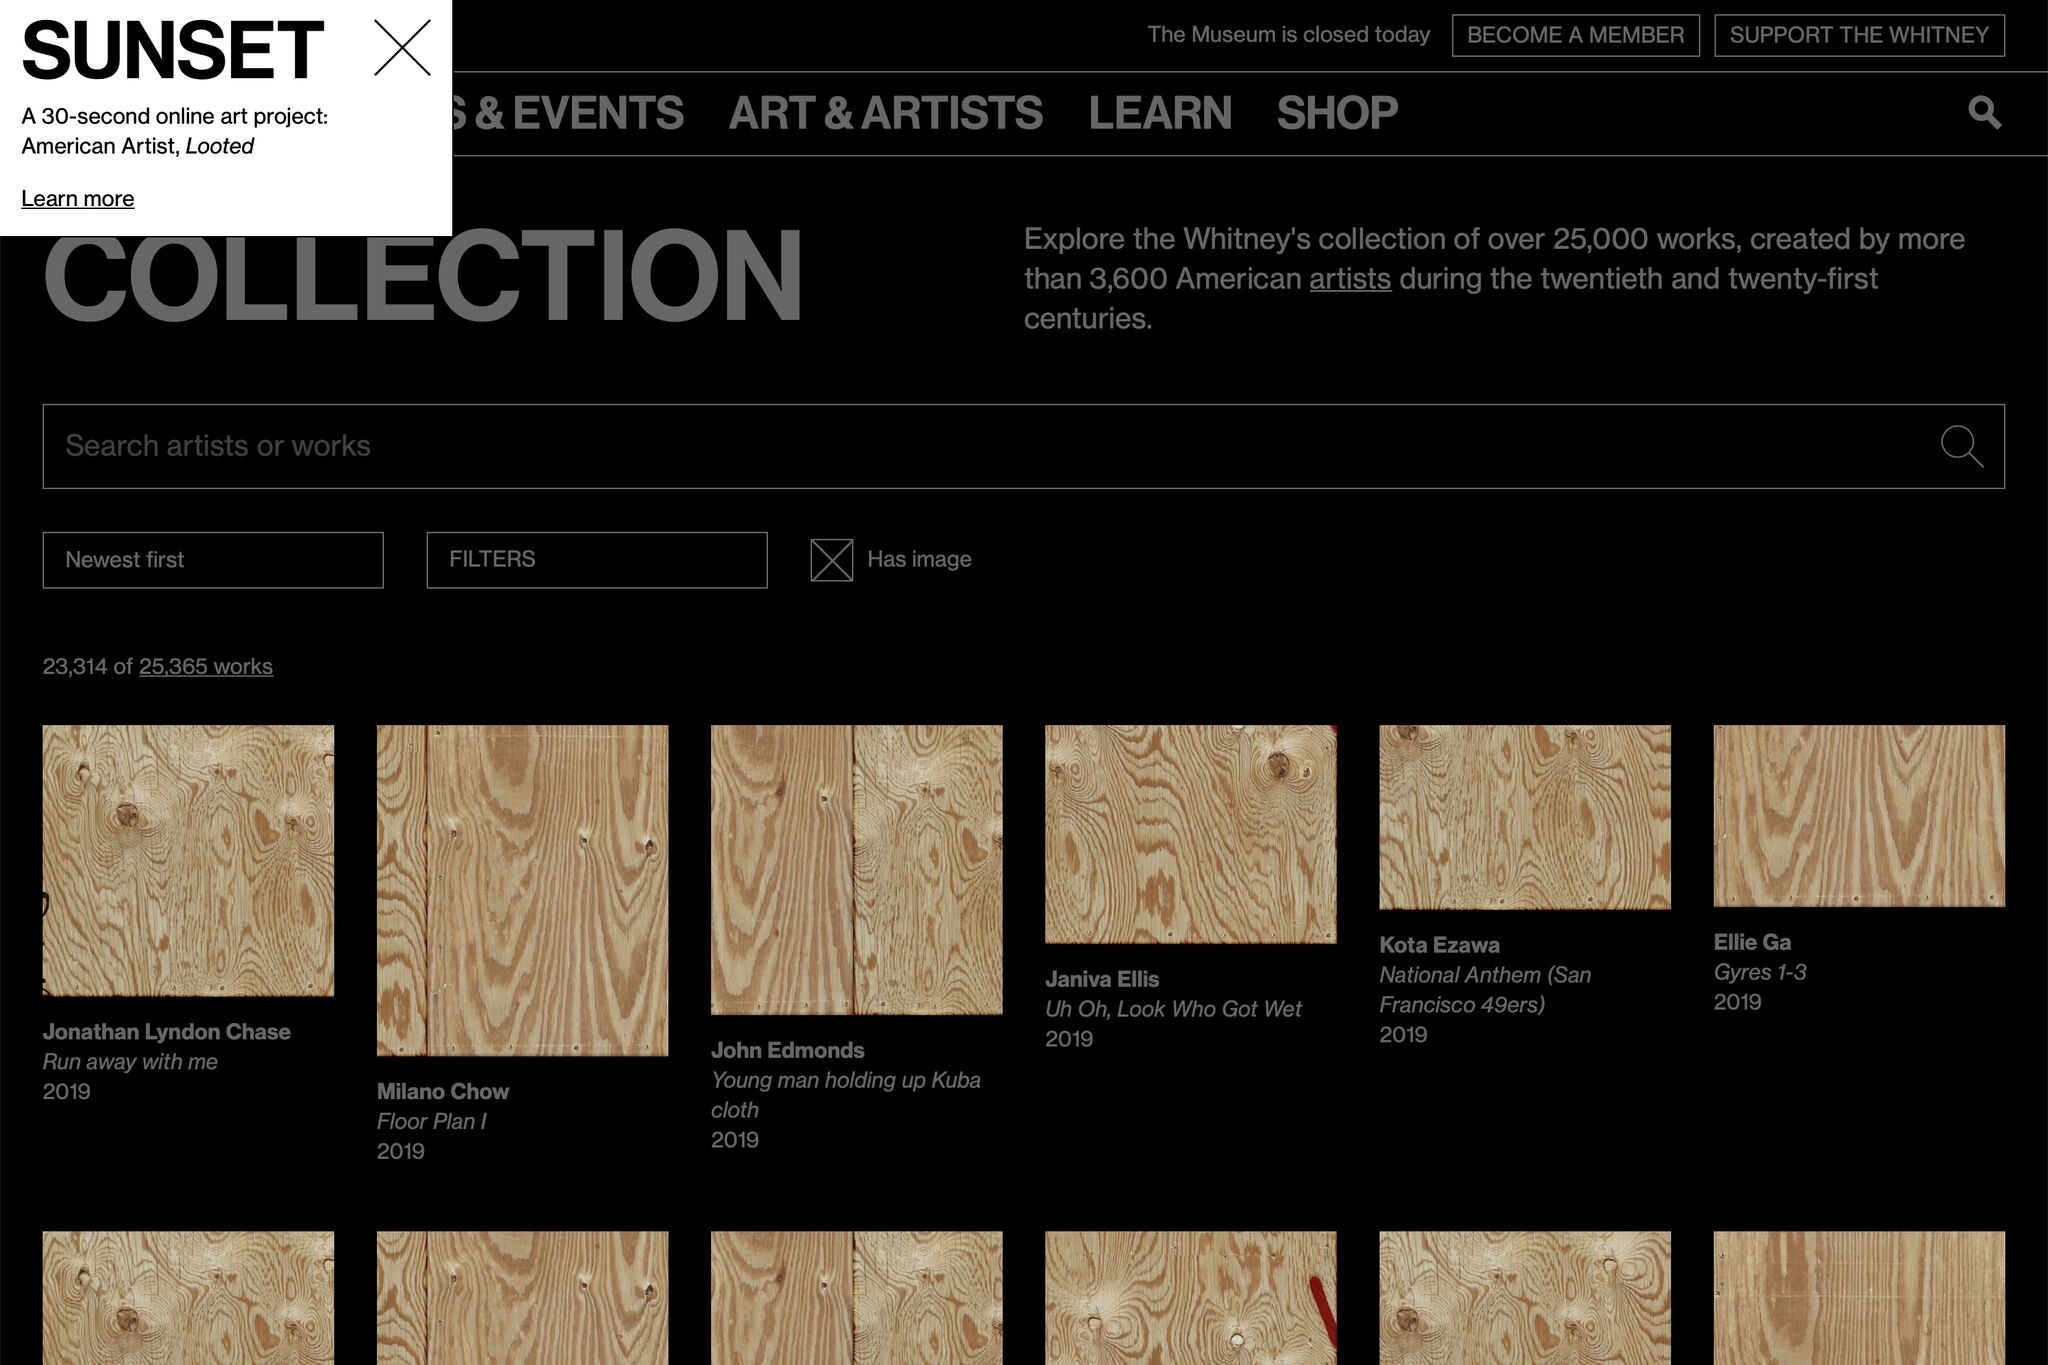 Images of artworks on the online collection replaced with wooden boards, over a black background and greyed-out text